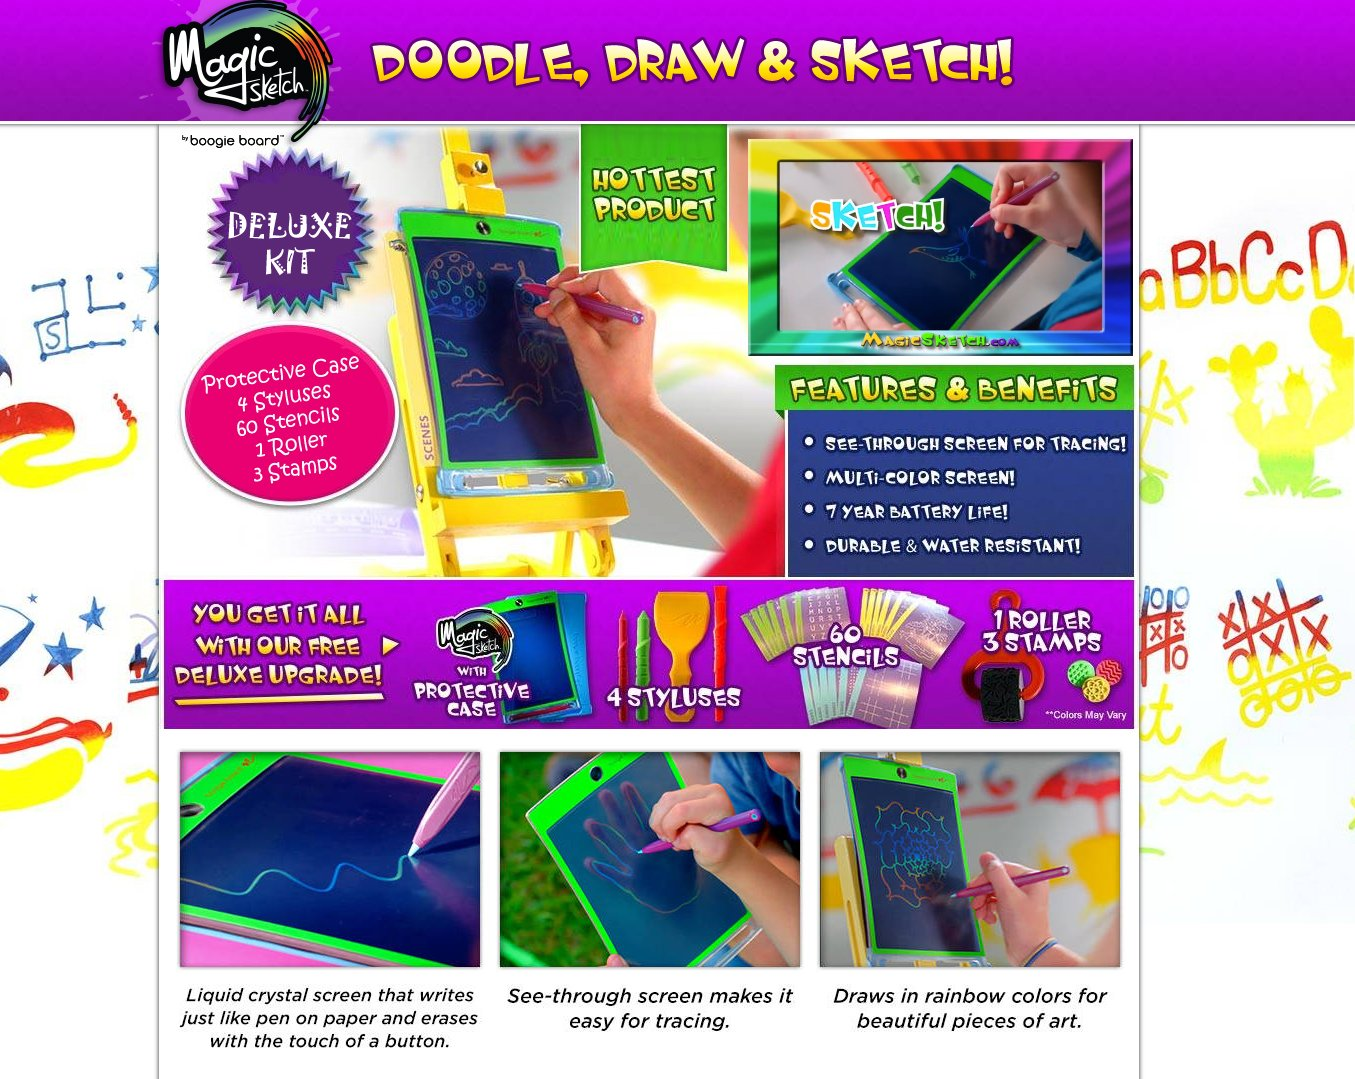 Magic Sketch Deluxe KIT | LCD Writing Board, Drawing, Doodle, Learning Tablet | Includes Protective Cover, 60 Stencils, 4 Styluses, 1 Stamp Roller & 3 Stamps | Kids, Office, School, House, Car Rides by Boogie Board (Image #2)